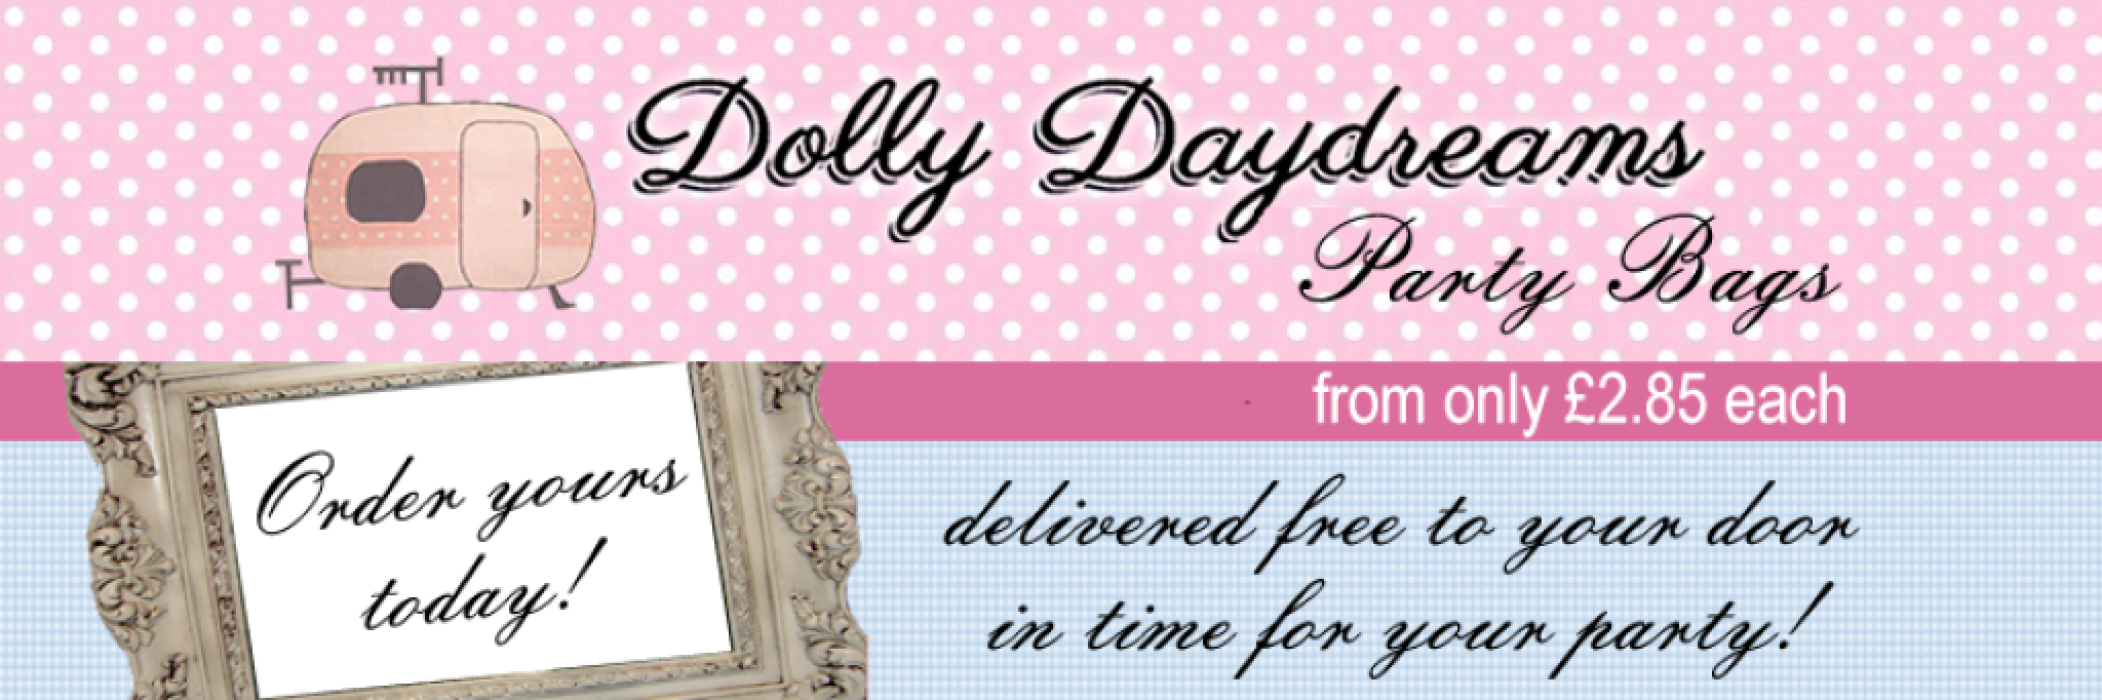 Dolly Daydreams Party Bags